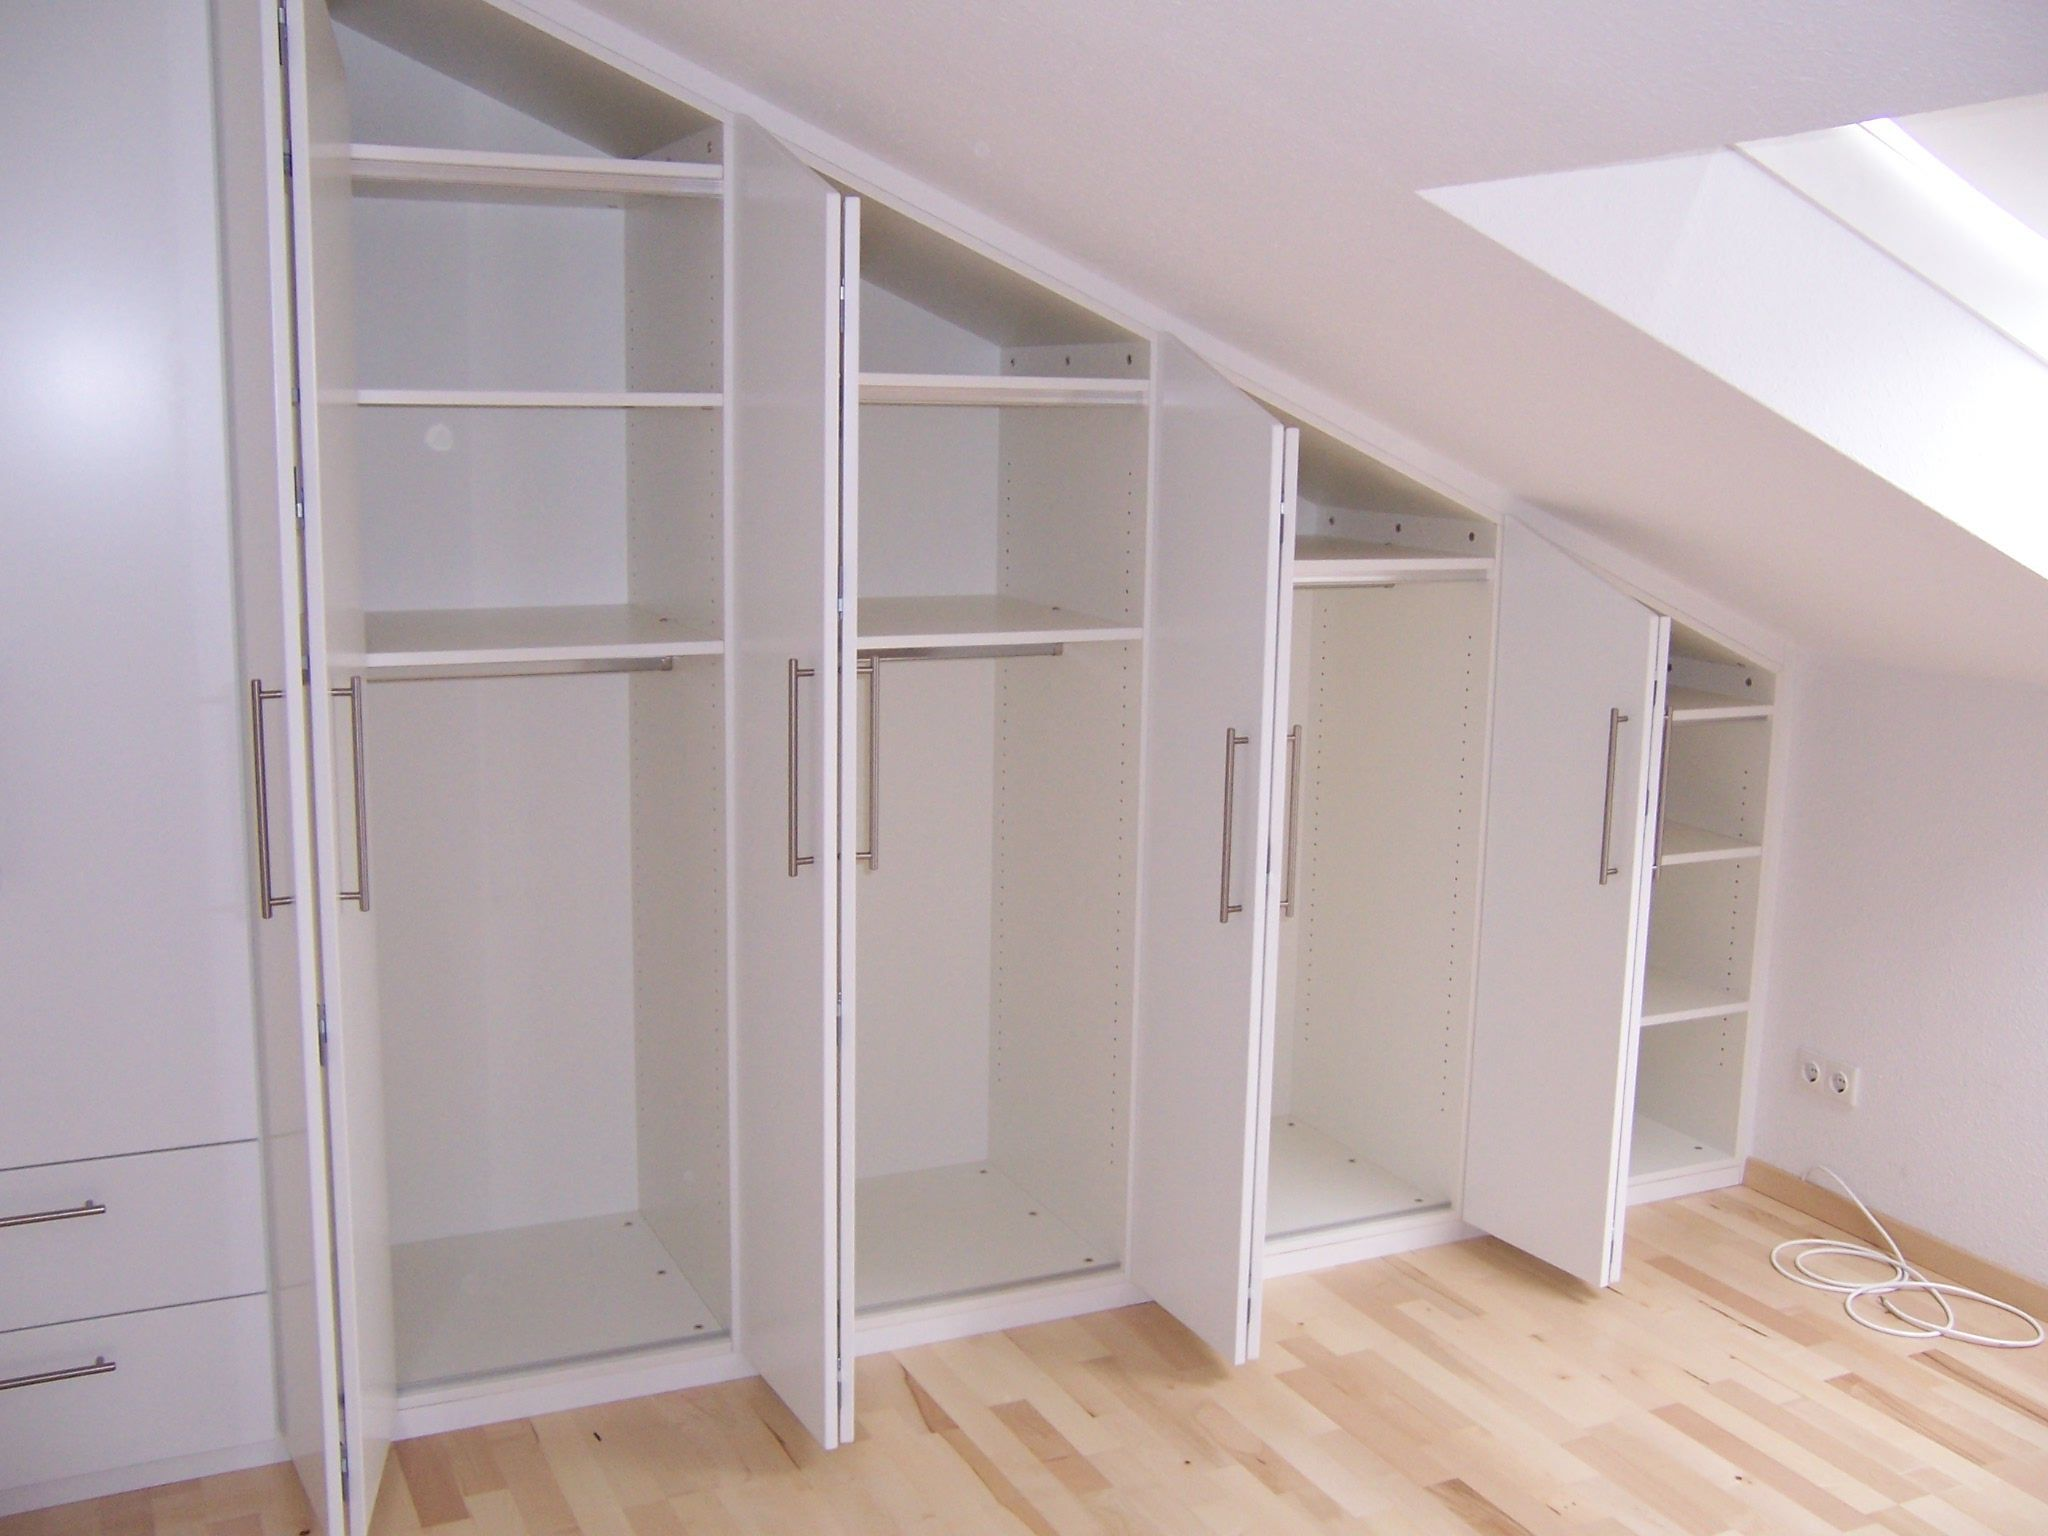 Kleiderschrank Schrage Gunstig Ikea Furniture Bedroom Storage